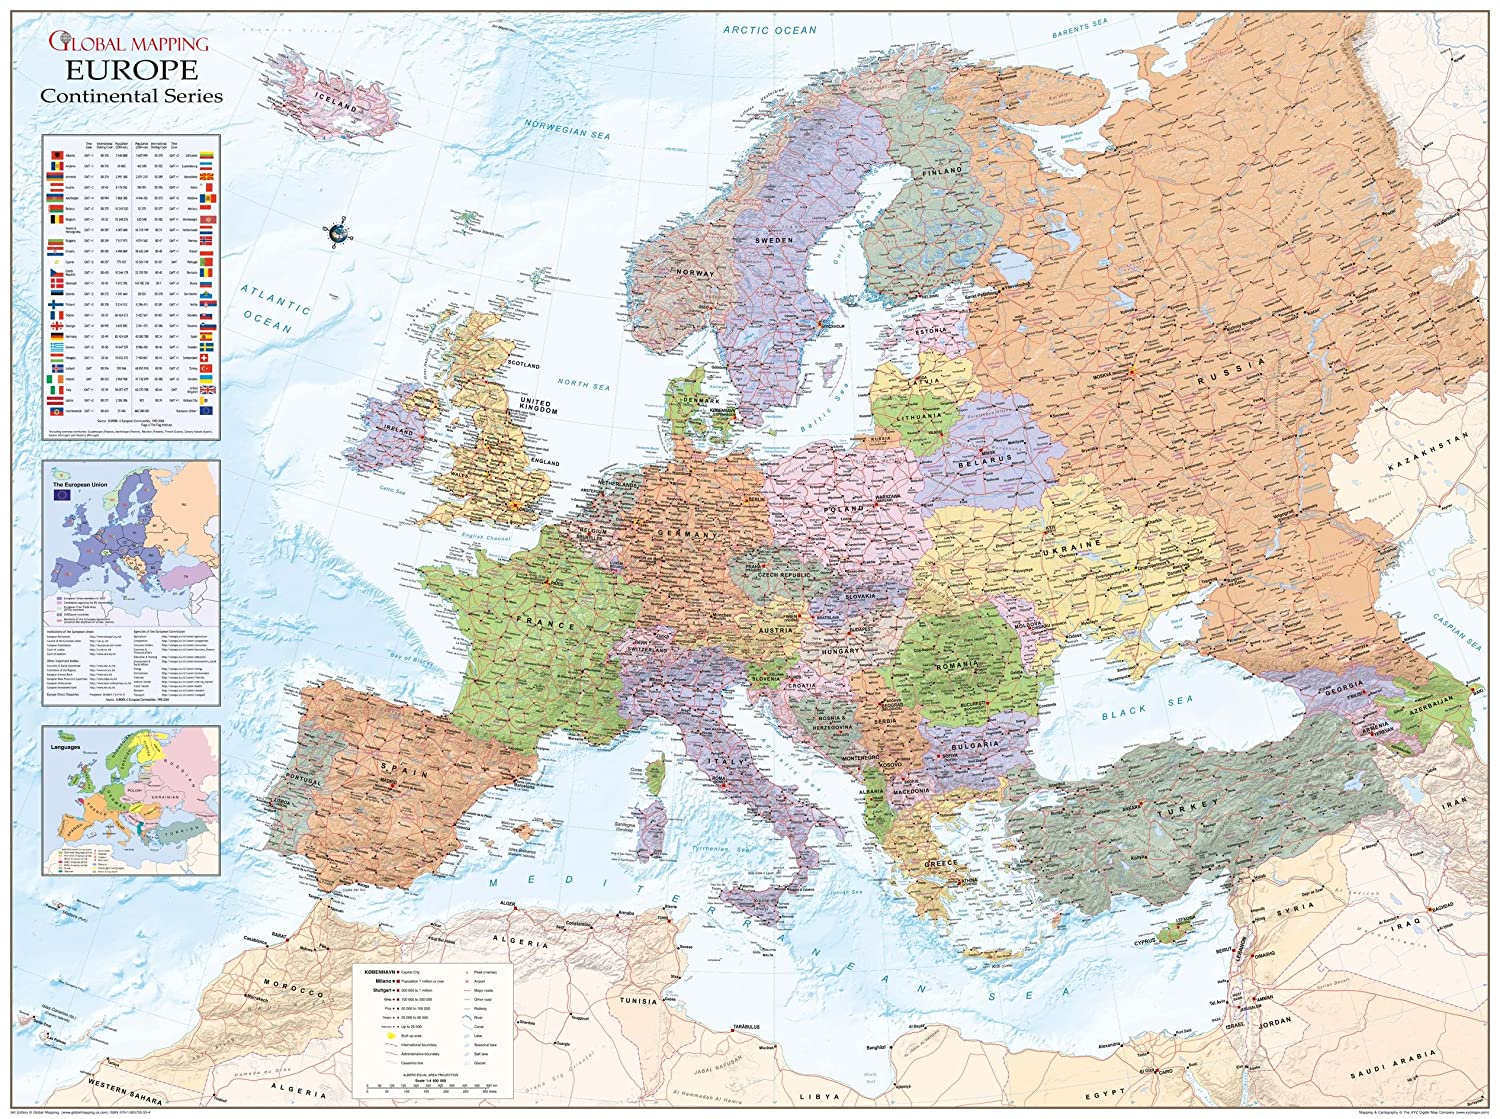 Amazon.com: Global Mapping Europe Political Wall Map - 53